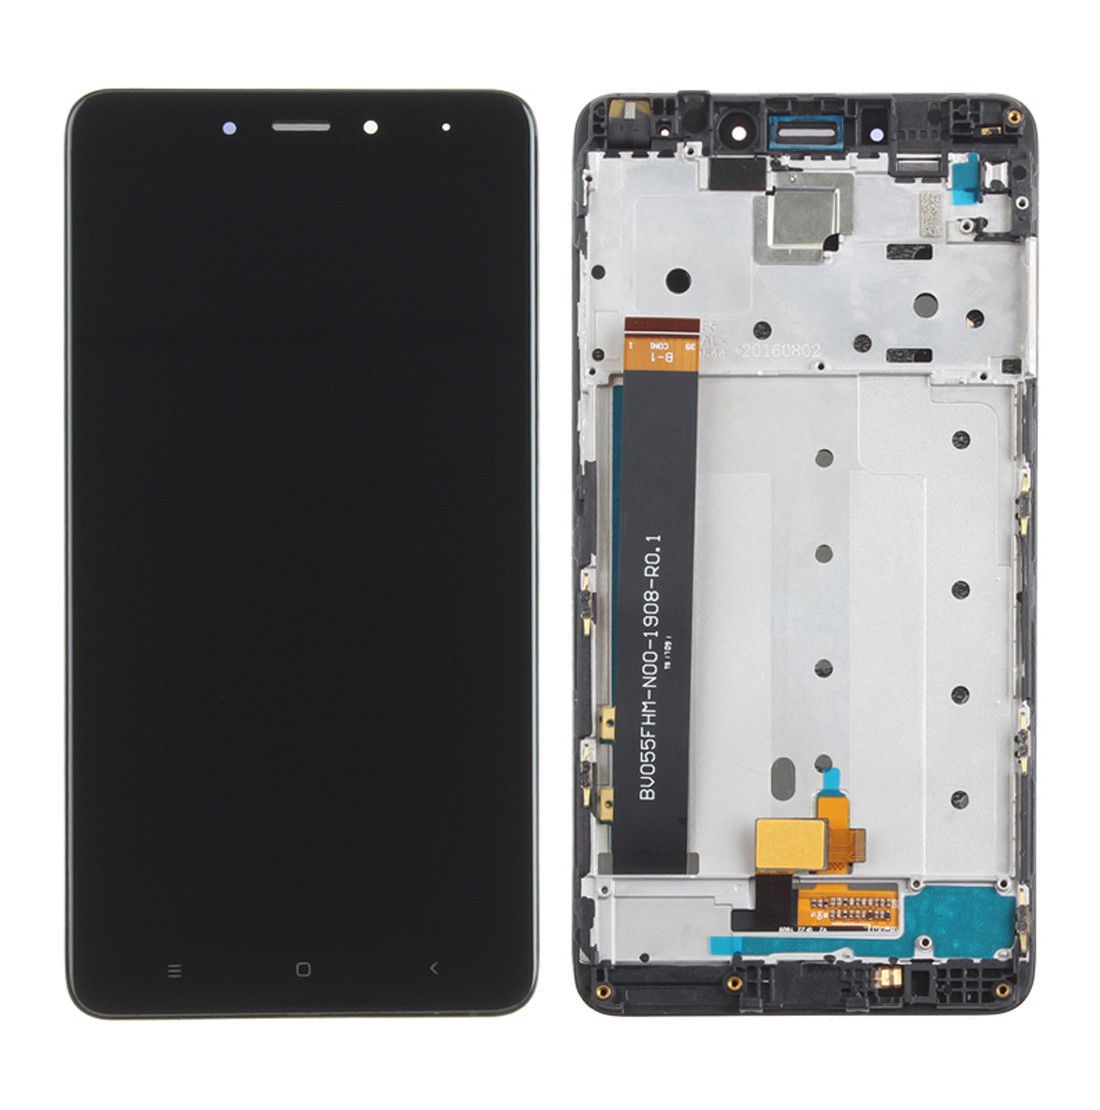 5.5 inch Original Display For XIAOMI Redmi Note 4 LCD Touch Screen Digitizer with Frame LCD For Xiaomi Redmi Note 4 Display5.5 inch Original Display For XIAOMI Redmi Note 4 LCD Touch Screen Digitizer with Frame LCD For Xiaomi Redmi Note 4 Display